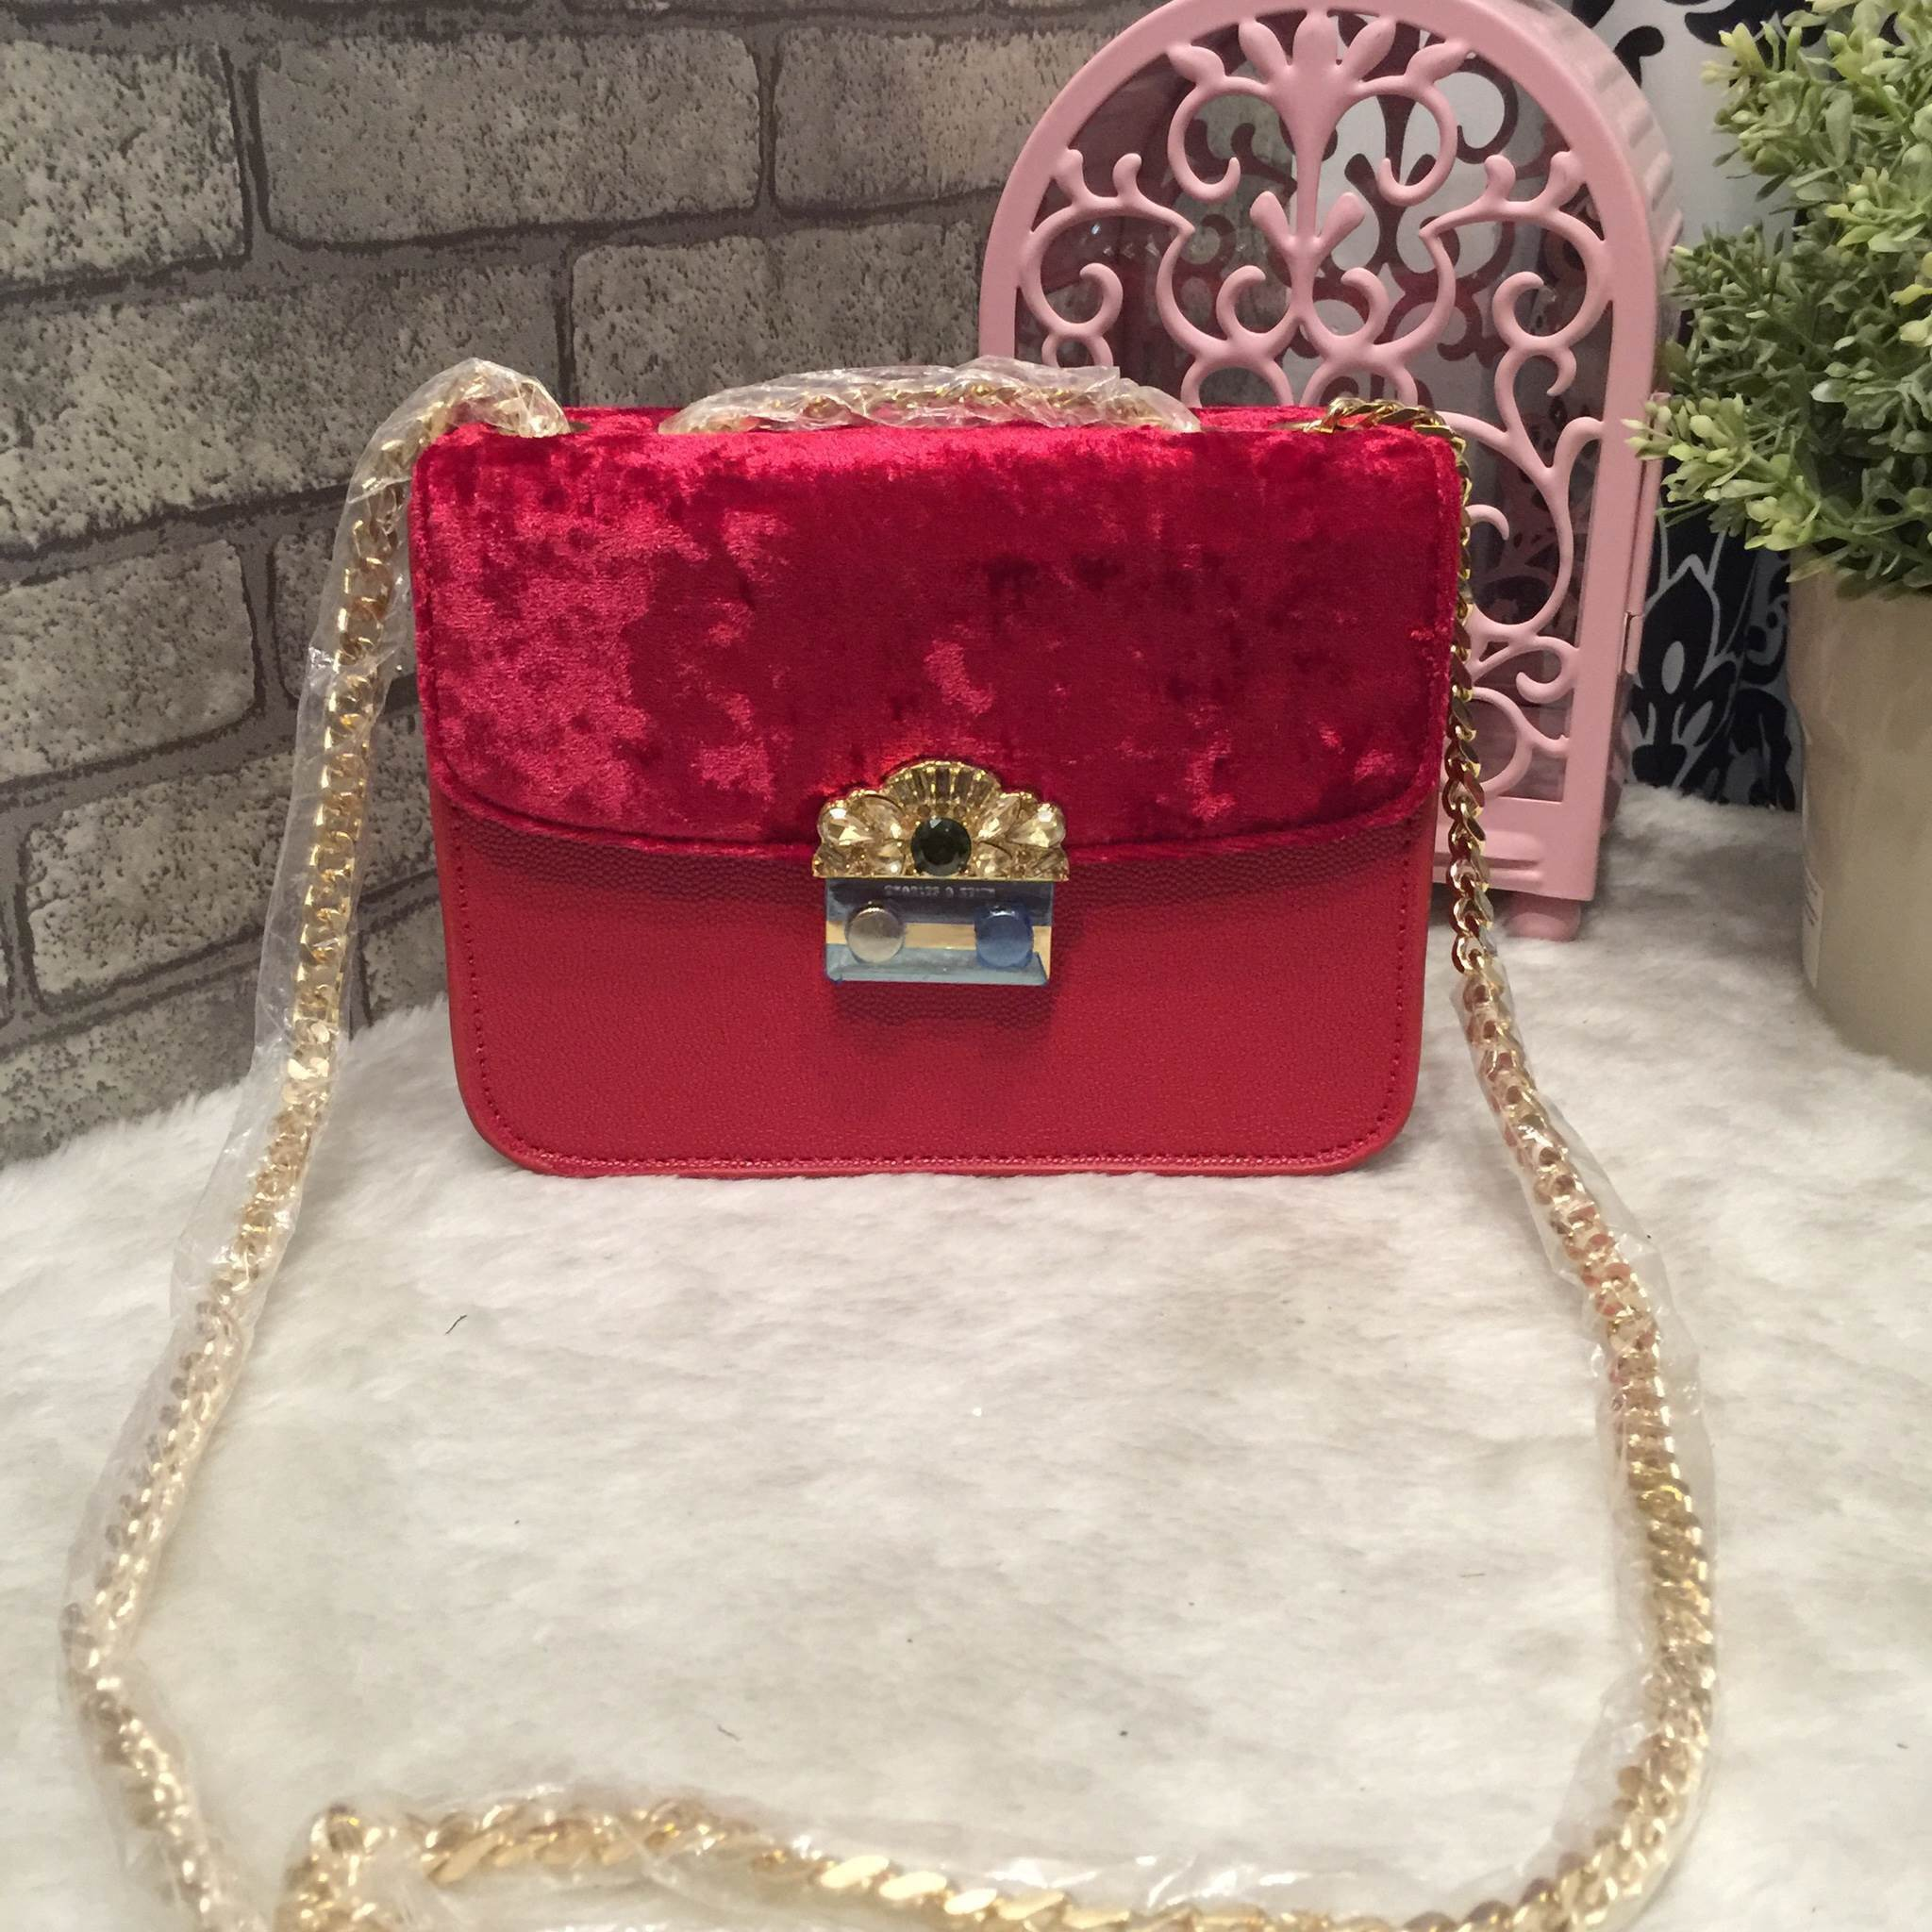 CHARLES & KEITH EMBELLISHED BUCKLE CROSSBODY BAG *สีแดง